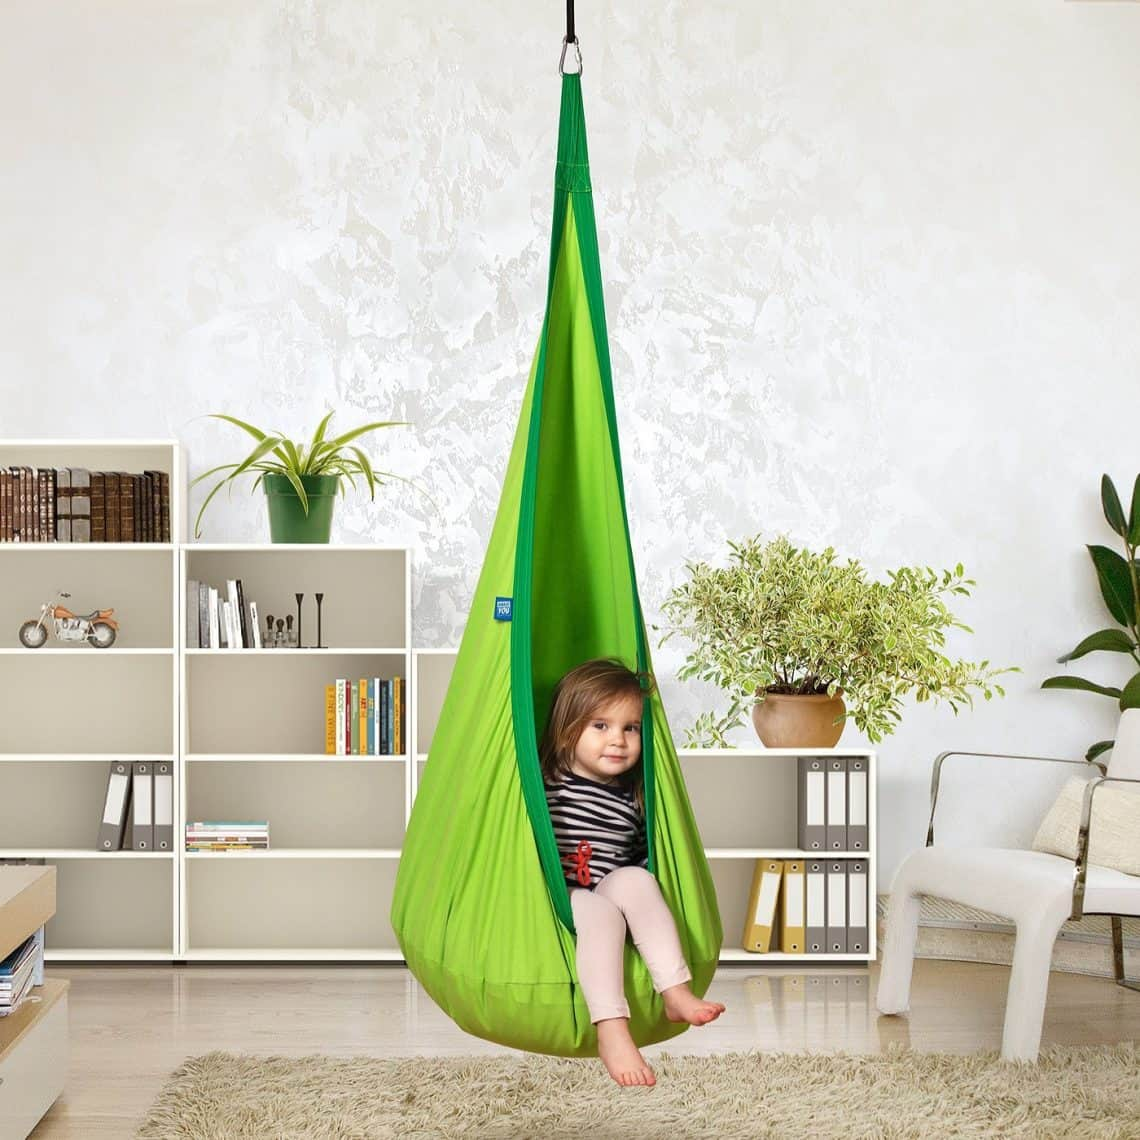 81yRh4nVECL. SL1400  1140x1140 - 10 Awesome Outdoor Toys to Make Summer Spectacular